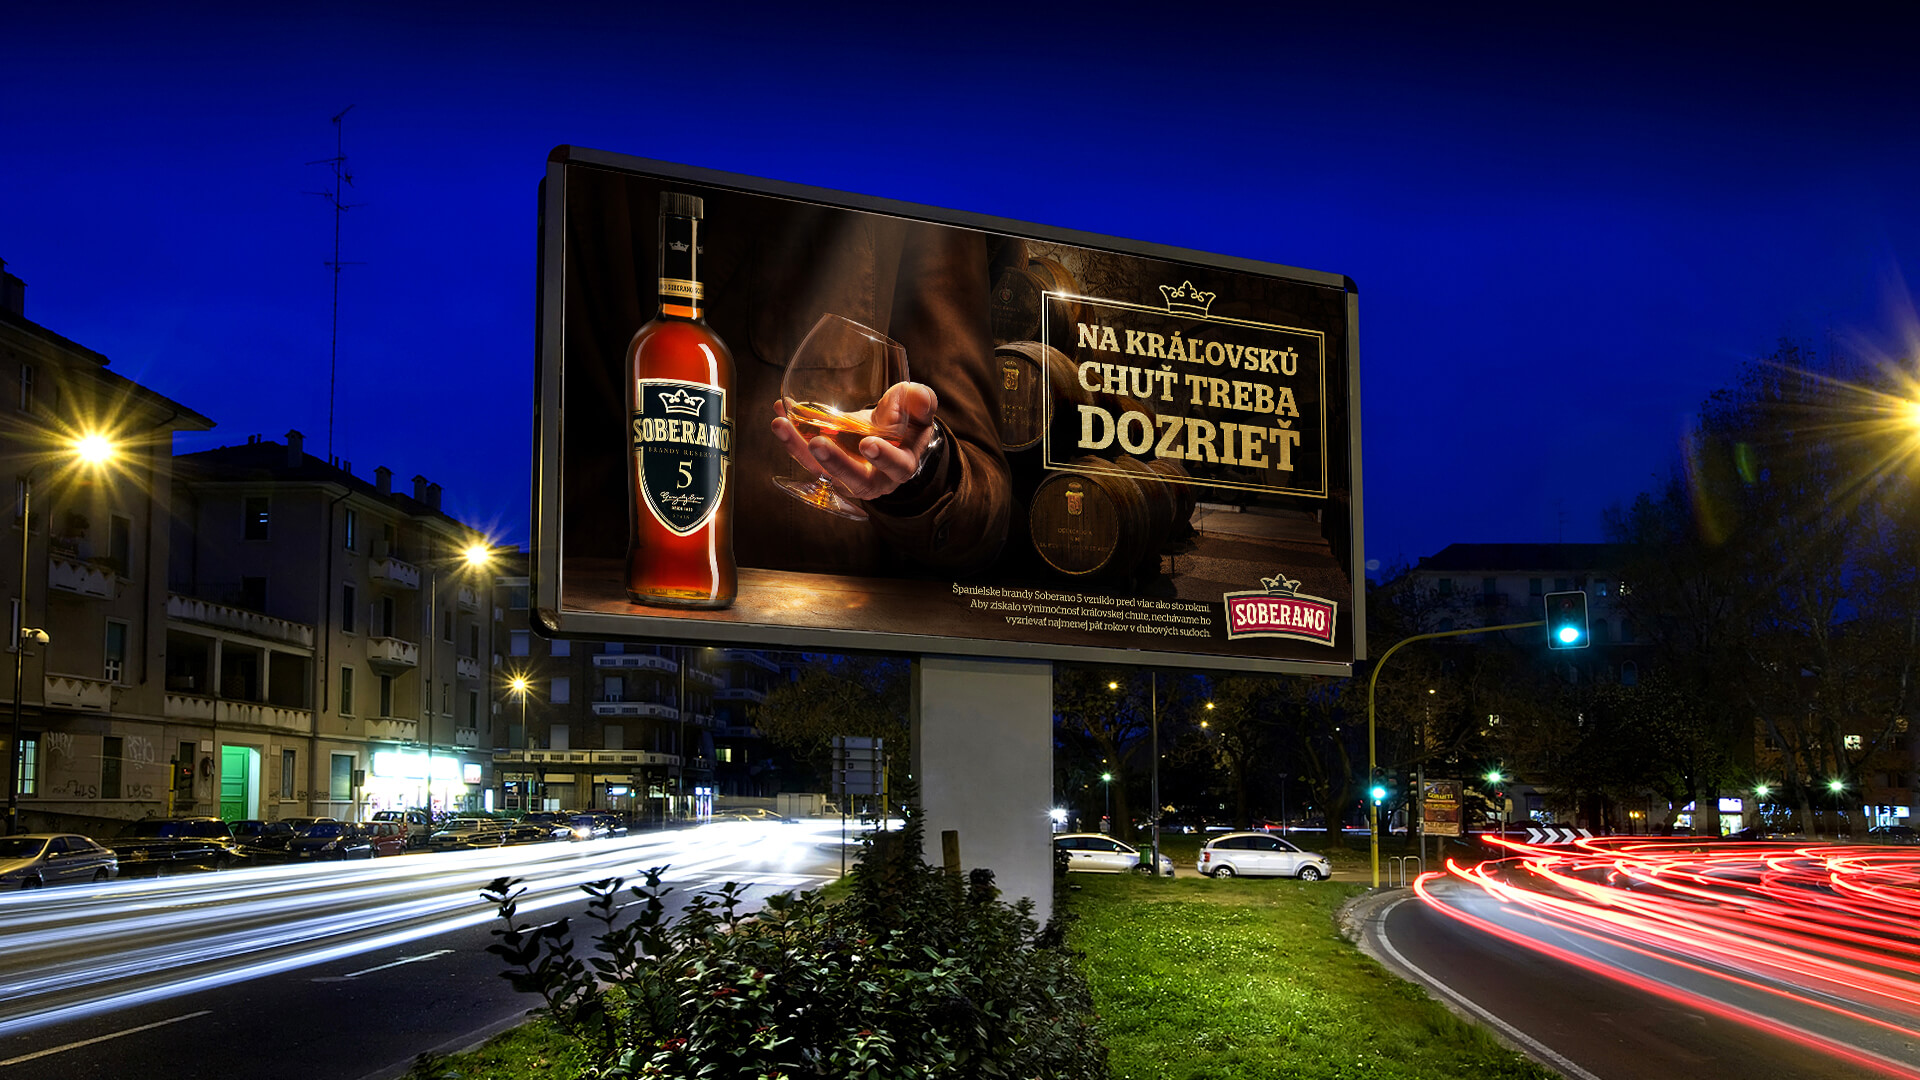 soberano billboard